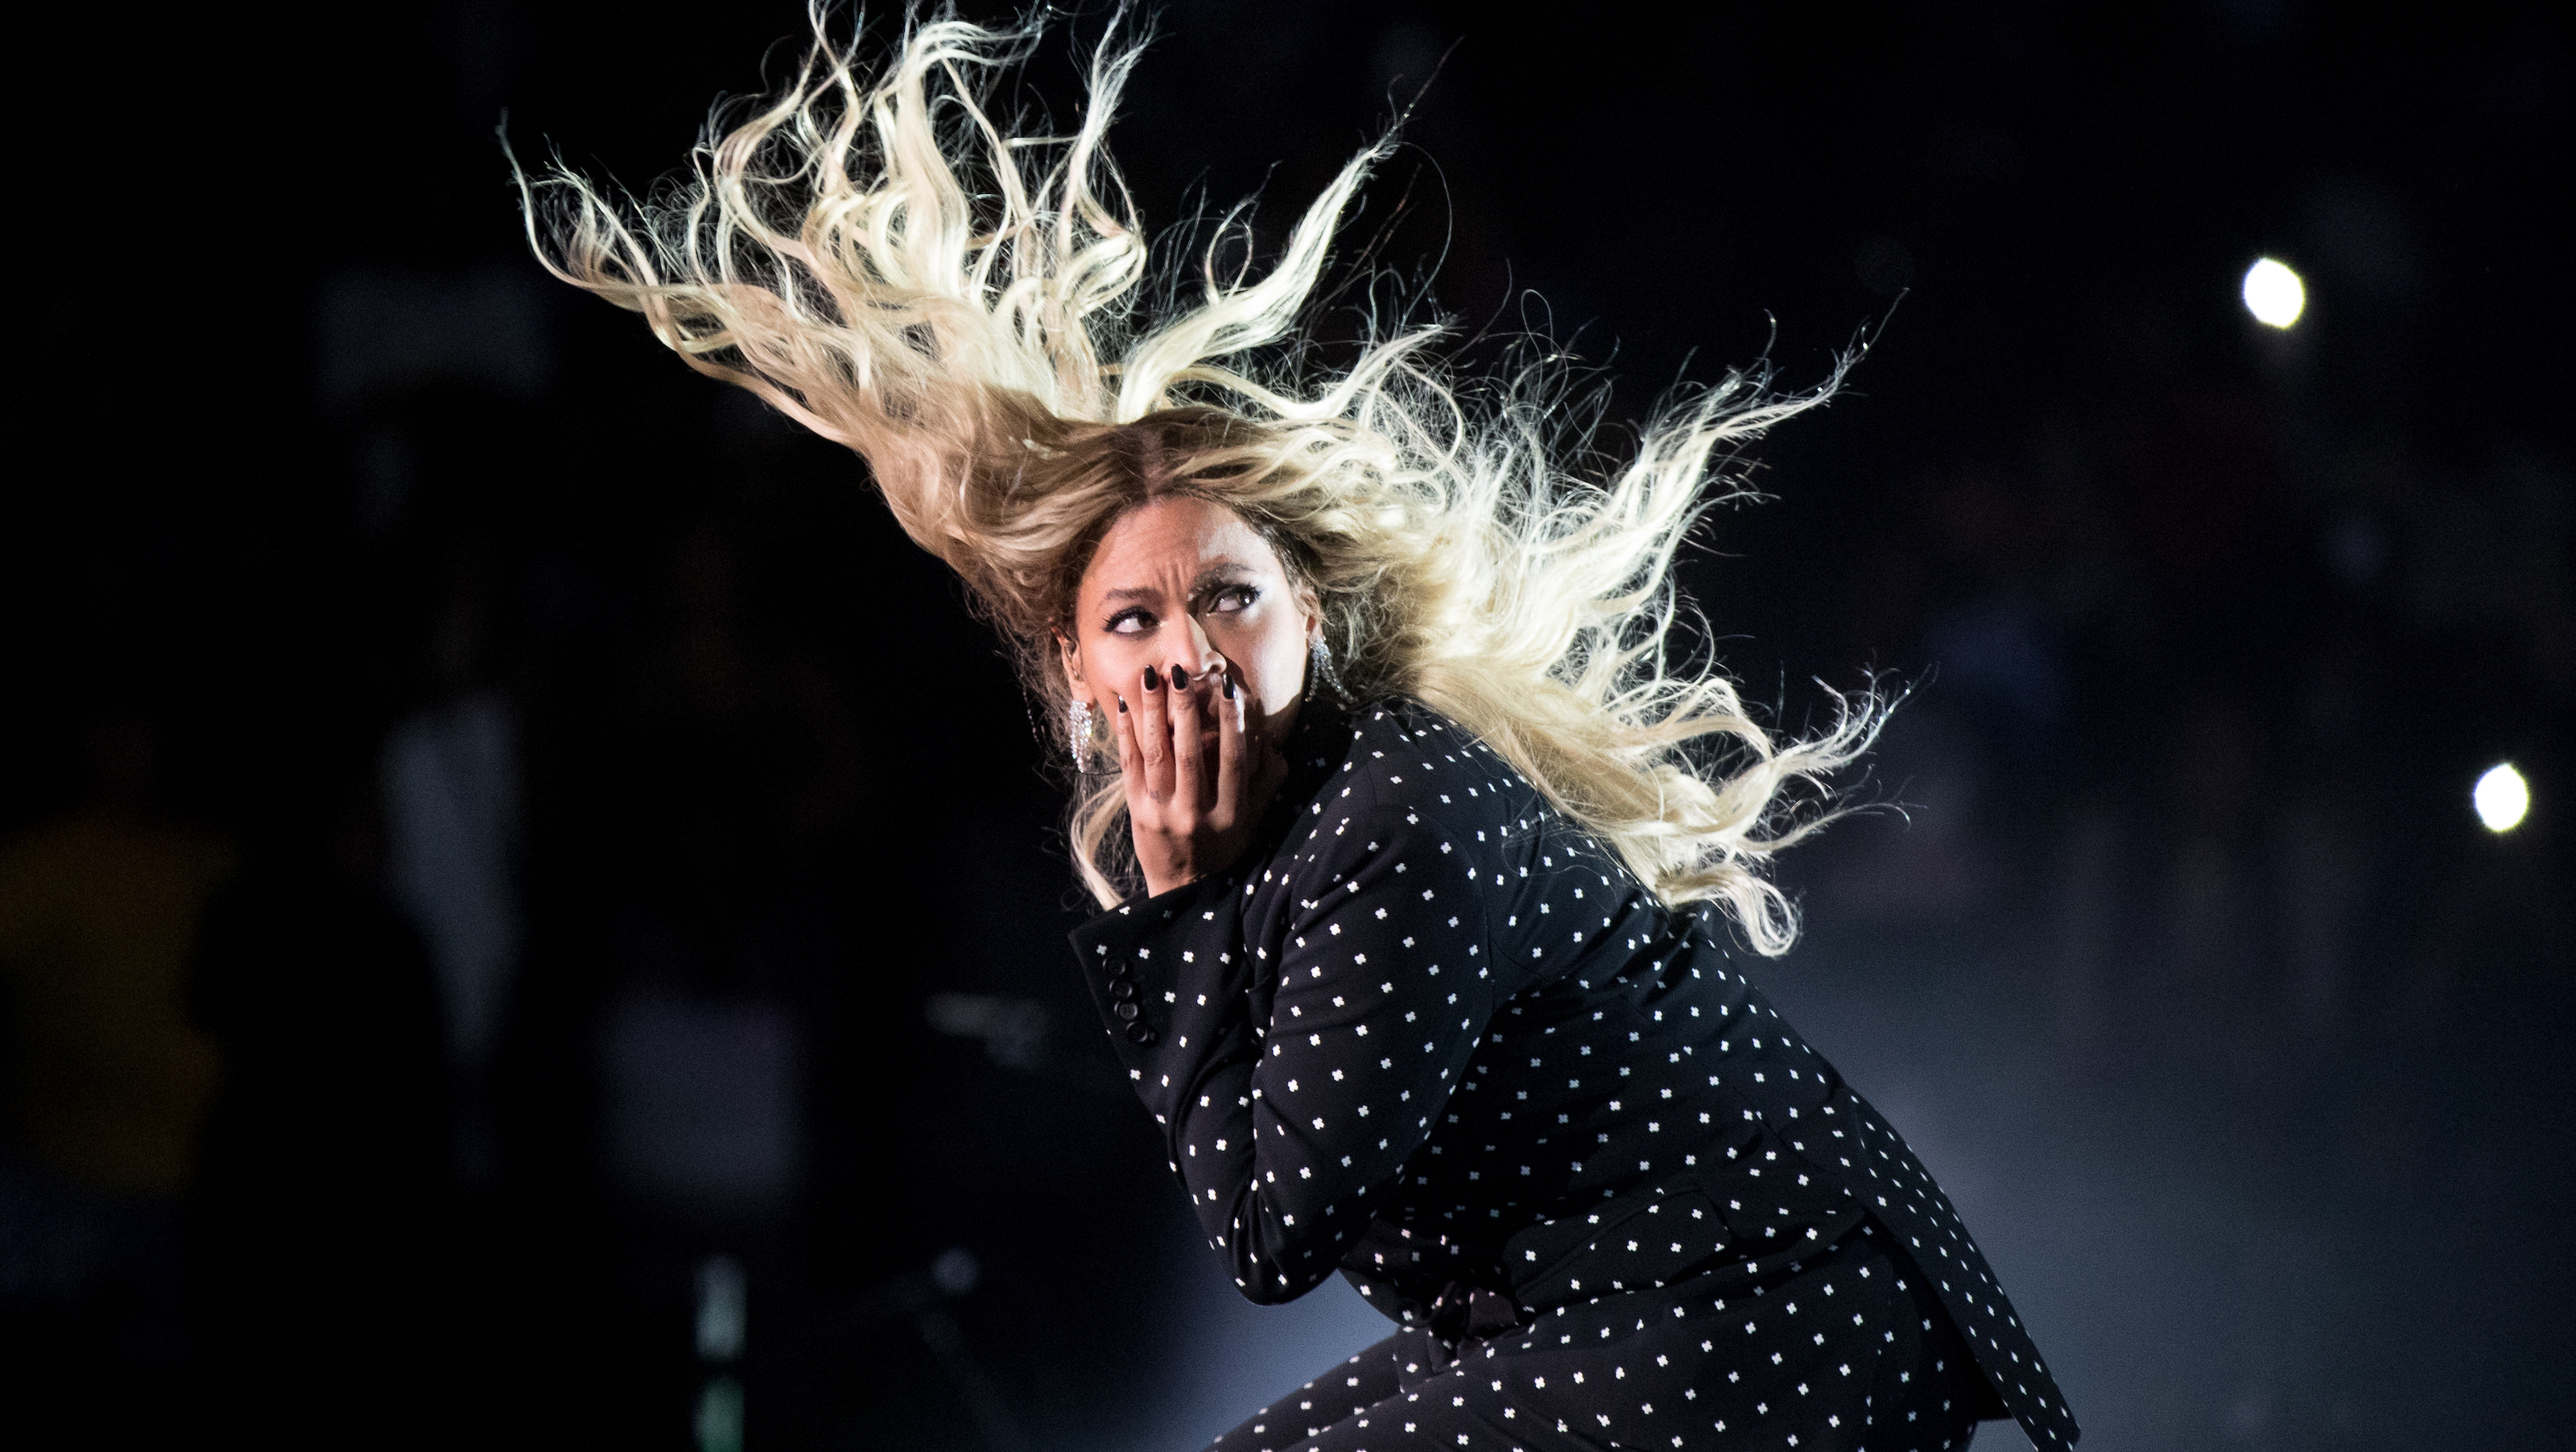 Beyonce performs at a Get Out the Vote concert for Democratic presidential candidate Hillary Clinton at the Wolstein Center in Cleveland, Friday, Nov. 4, 2016. (AP Photo/Andrew Harnik)